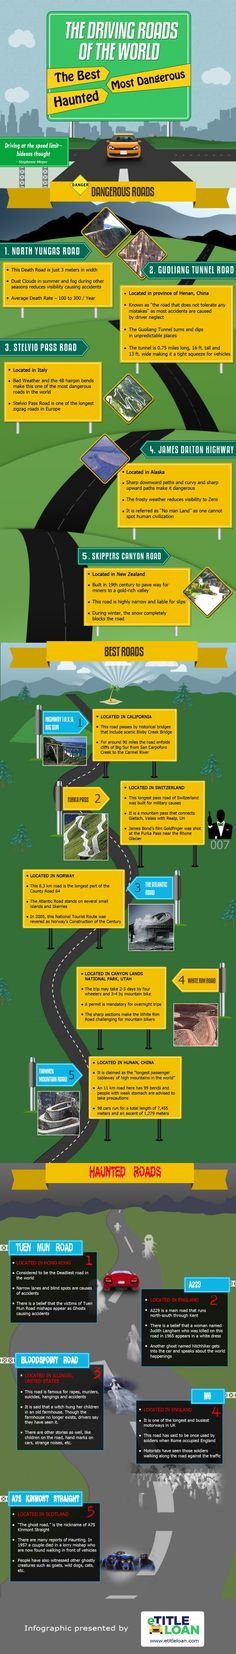 """Check out the """"Haunted Roads"""" section of this infographic on """"The Best, Most Dangerous & Haunted Roads in the World."""""""